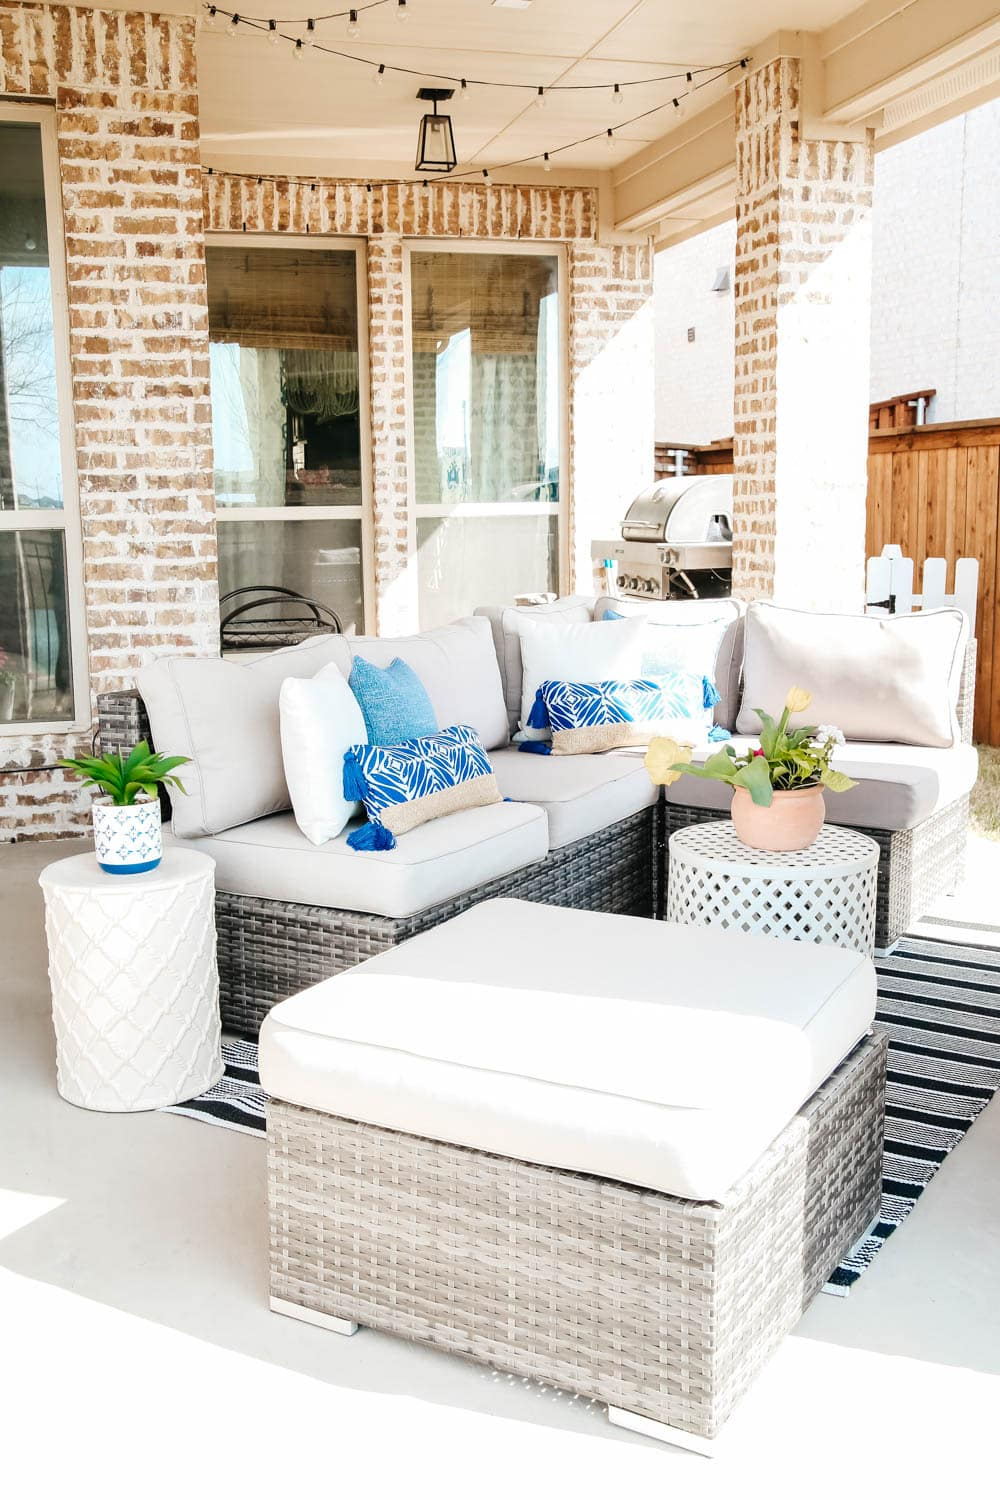 Comfortable seating, throw pillows in beautiful blue. #ABlissfulNest #patio #outdoor #backyard